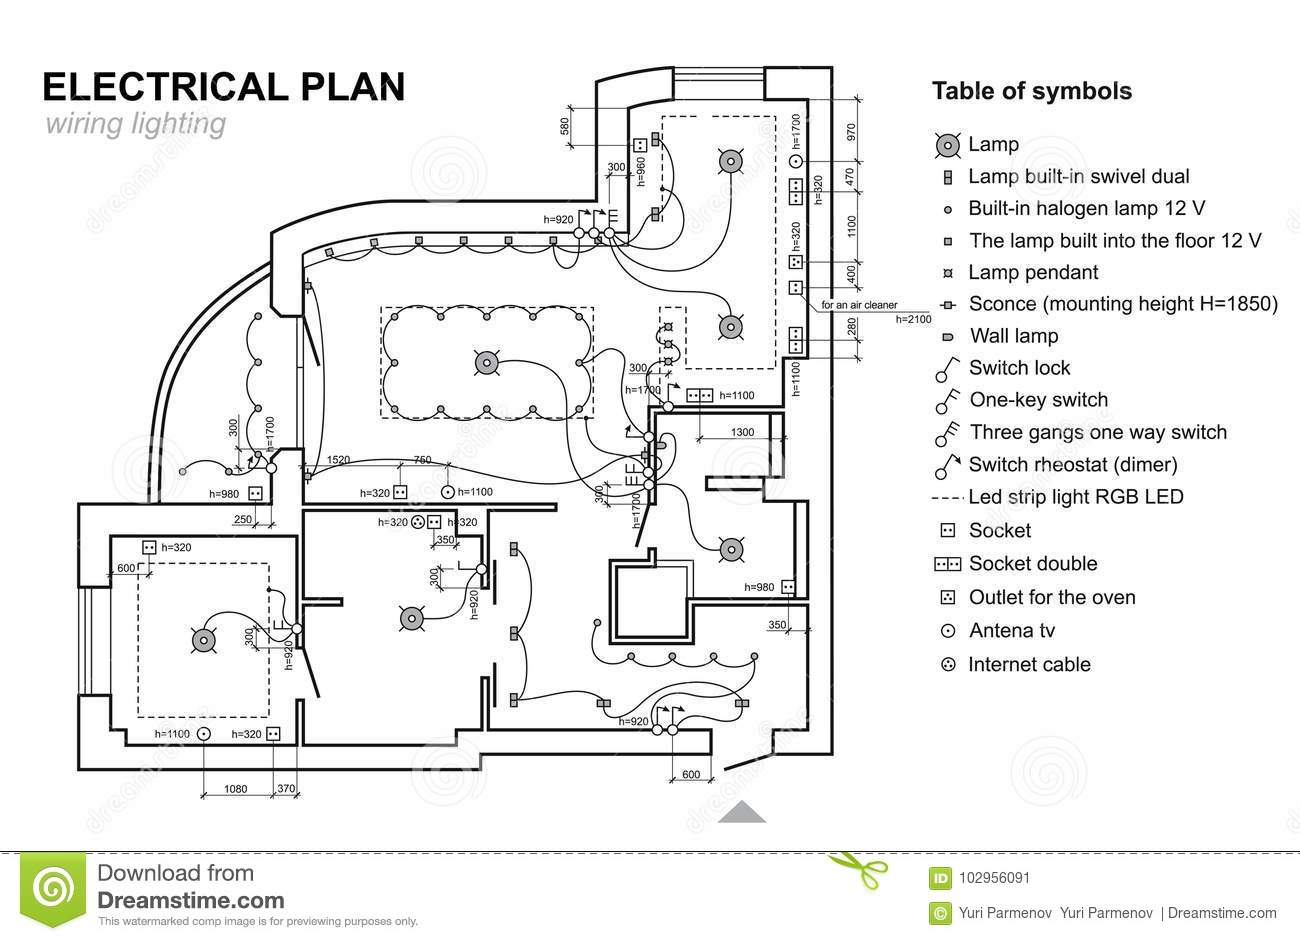 Plan Wiring Lighting Electrical Schematic Interior Set Of Standard Icons Switches Electrical